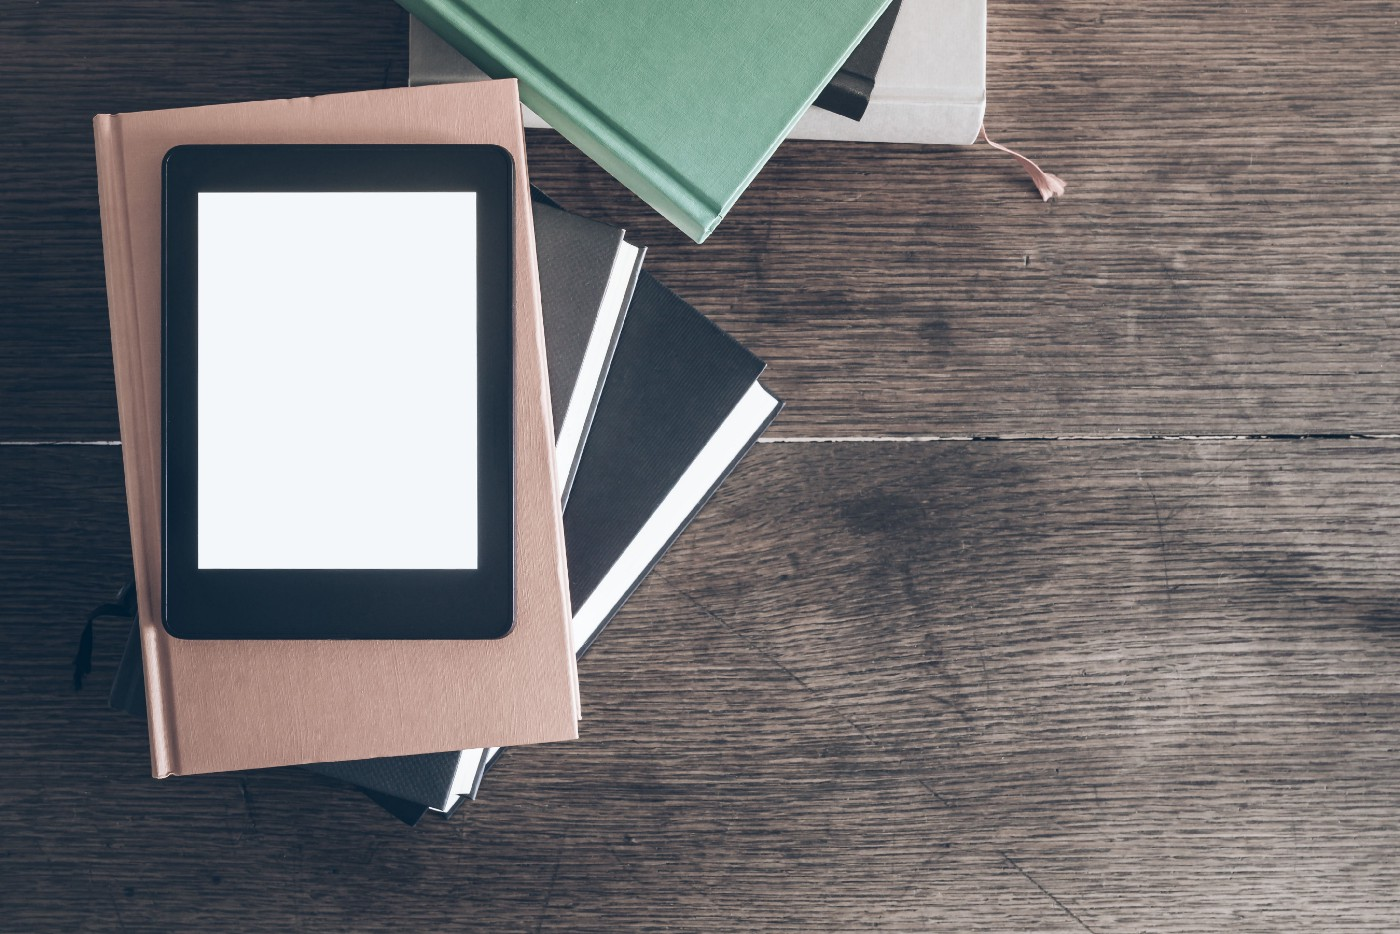 self-publishing your very own ebook